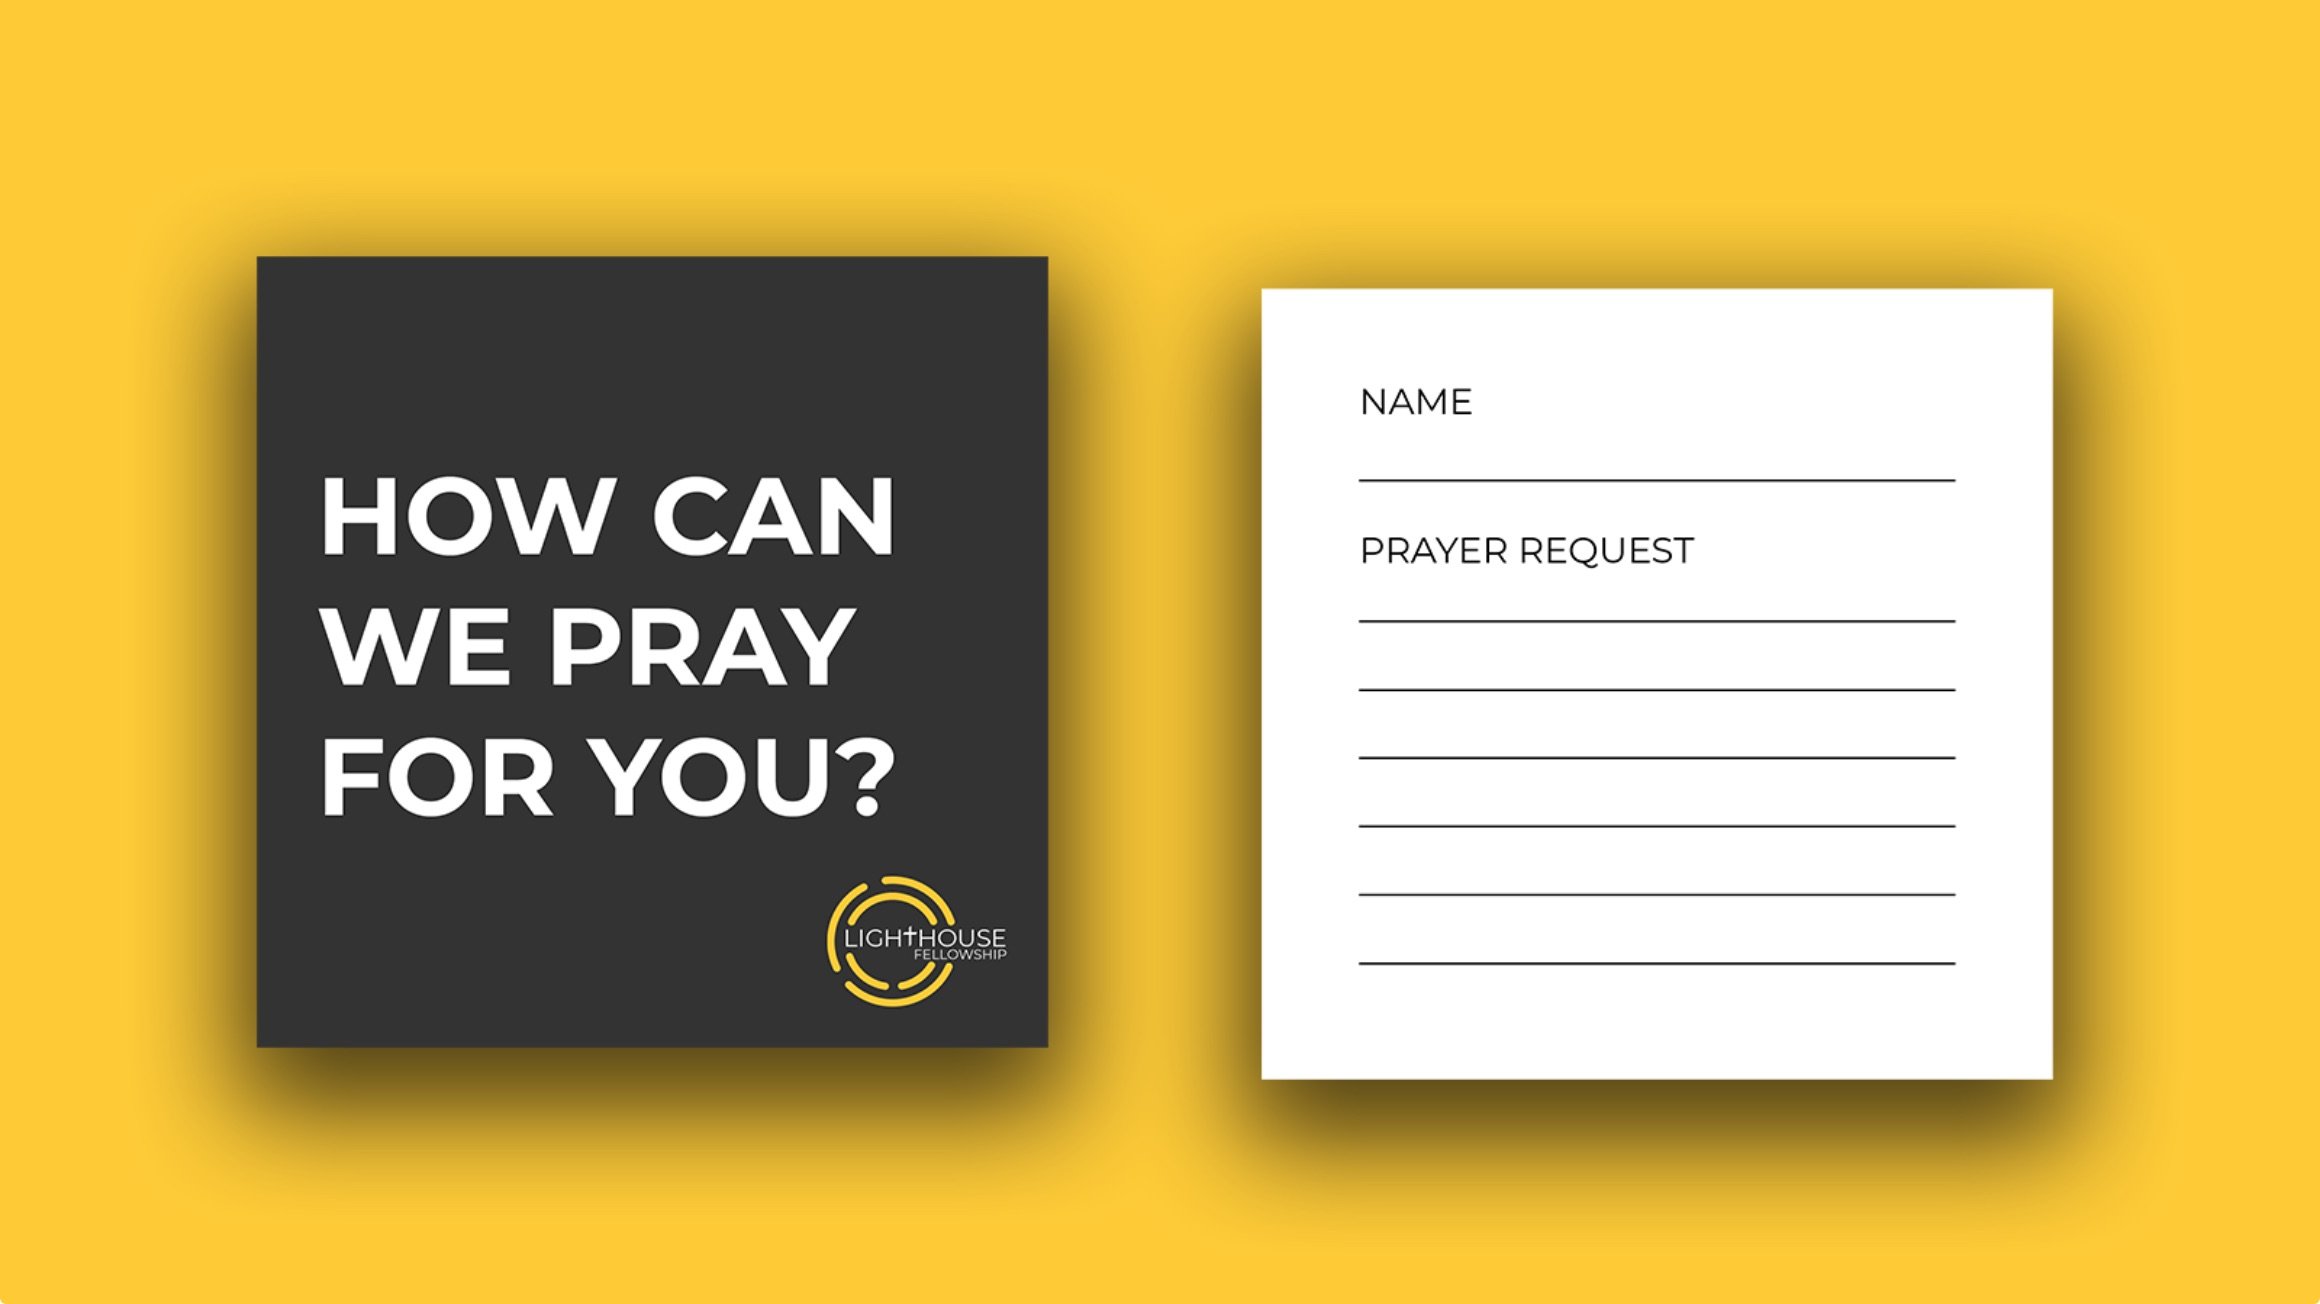 Design of prayer request cards for Lighthouse Fellowship